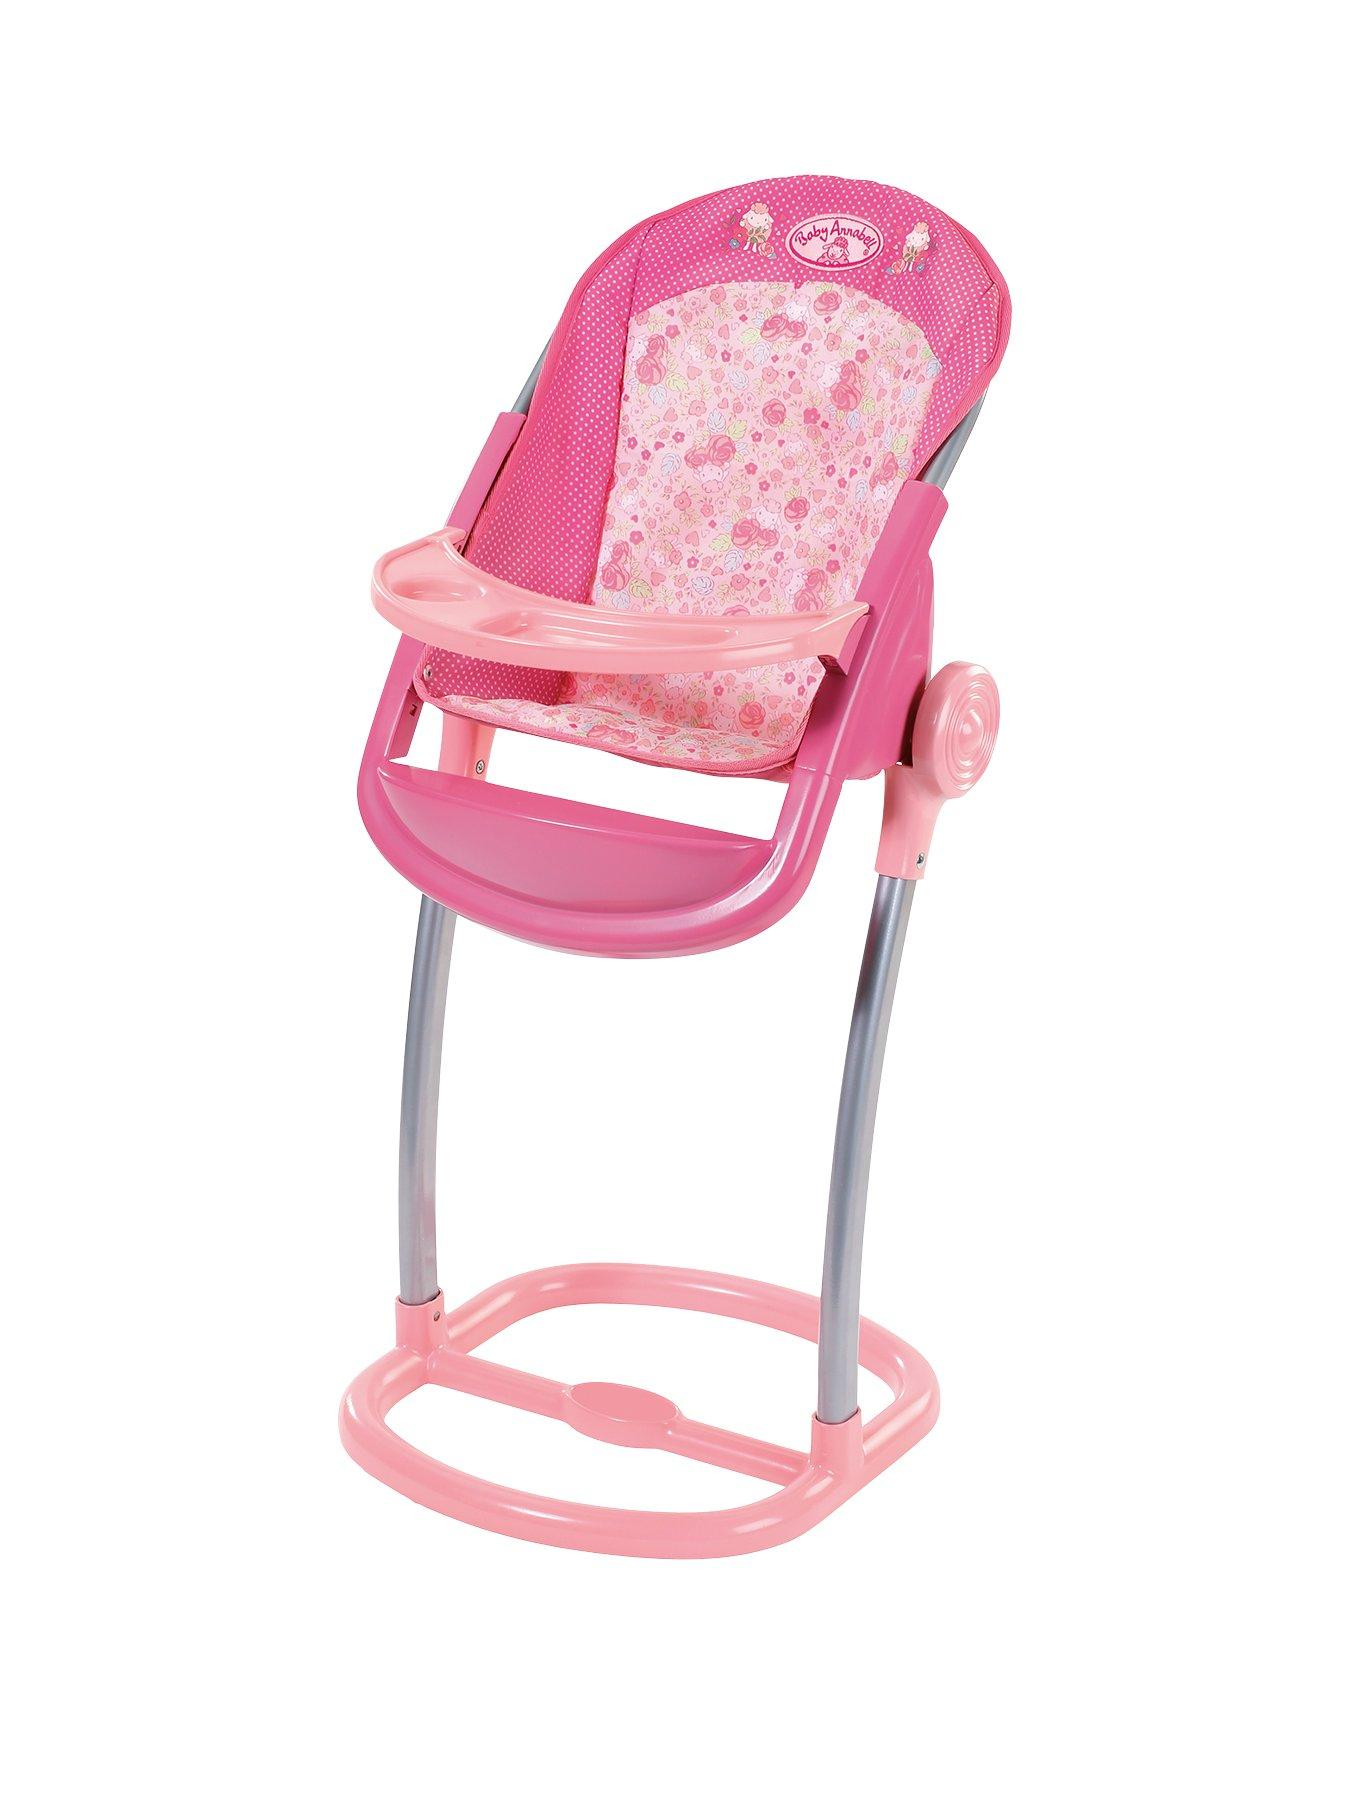 Compare prices for Baby Annabell Highchair